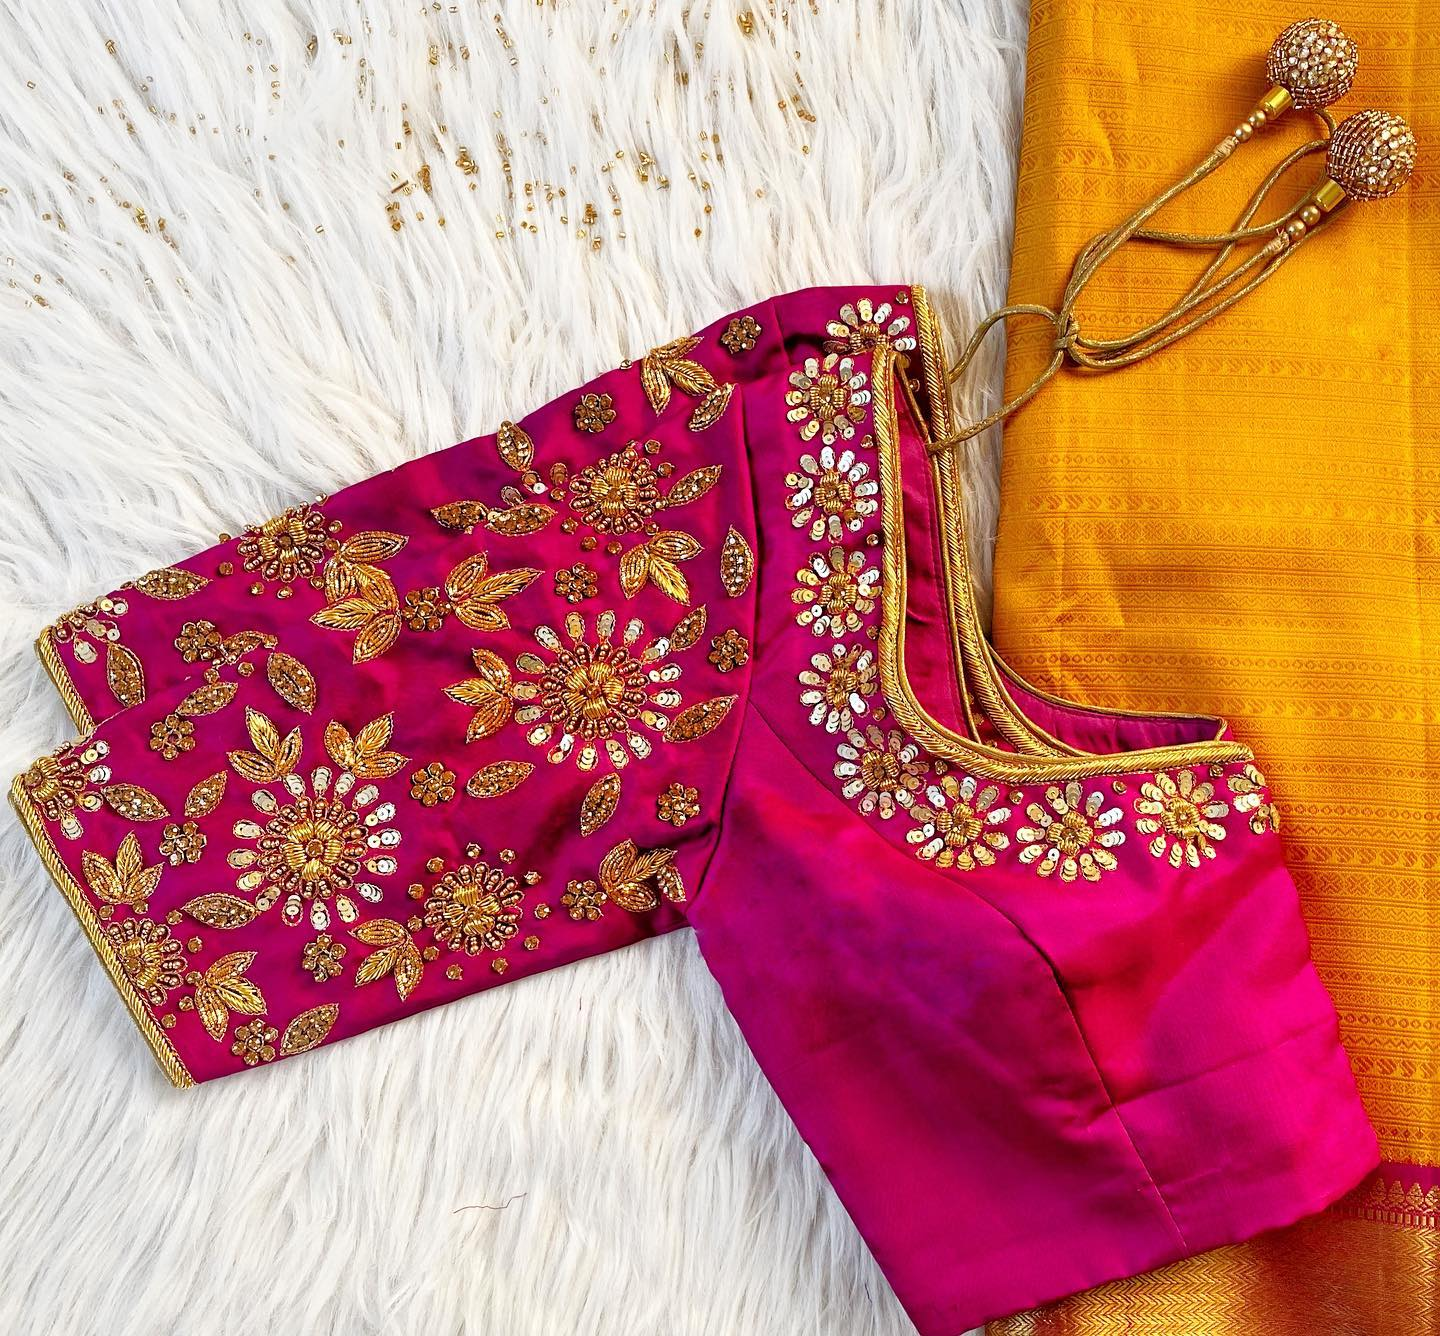 Gorgeous pink color designer blouse with floral and leaf design hand embroidery zardosi work.  2021-04-09